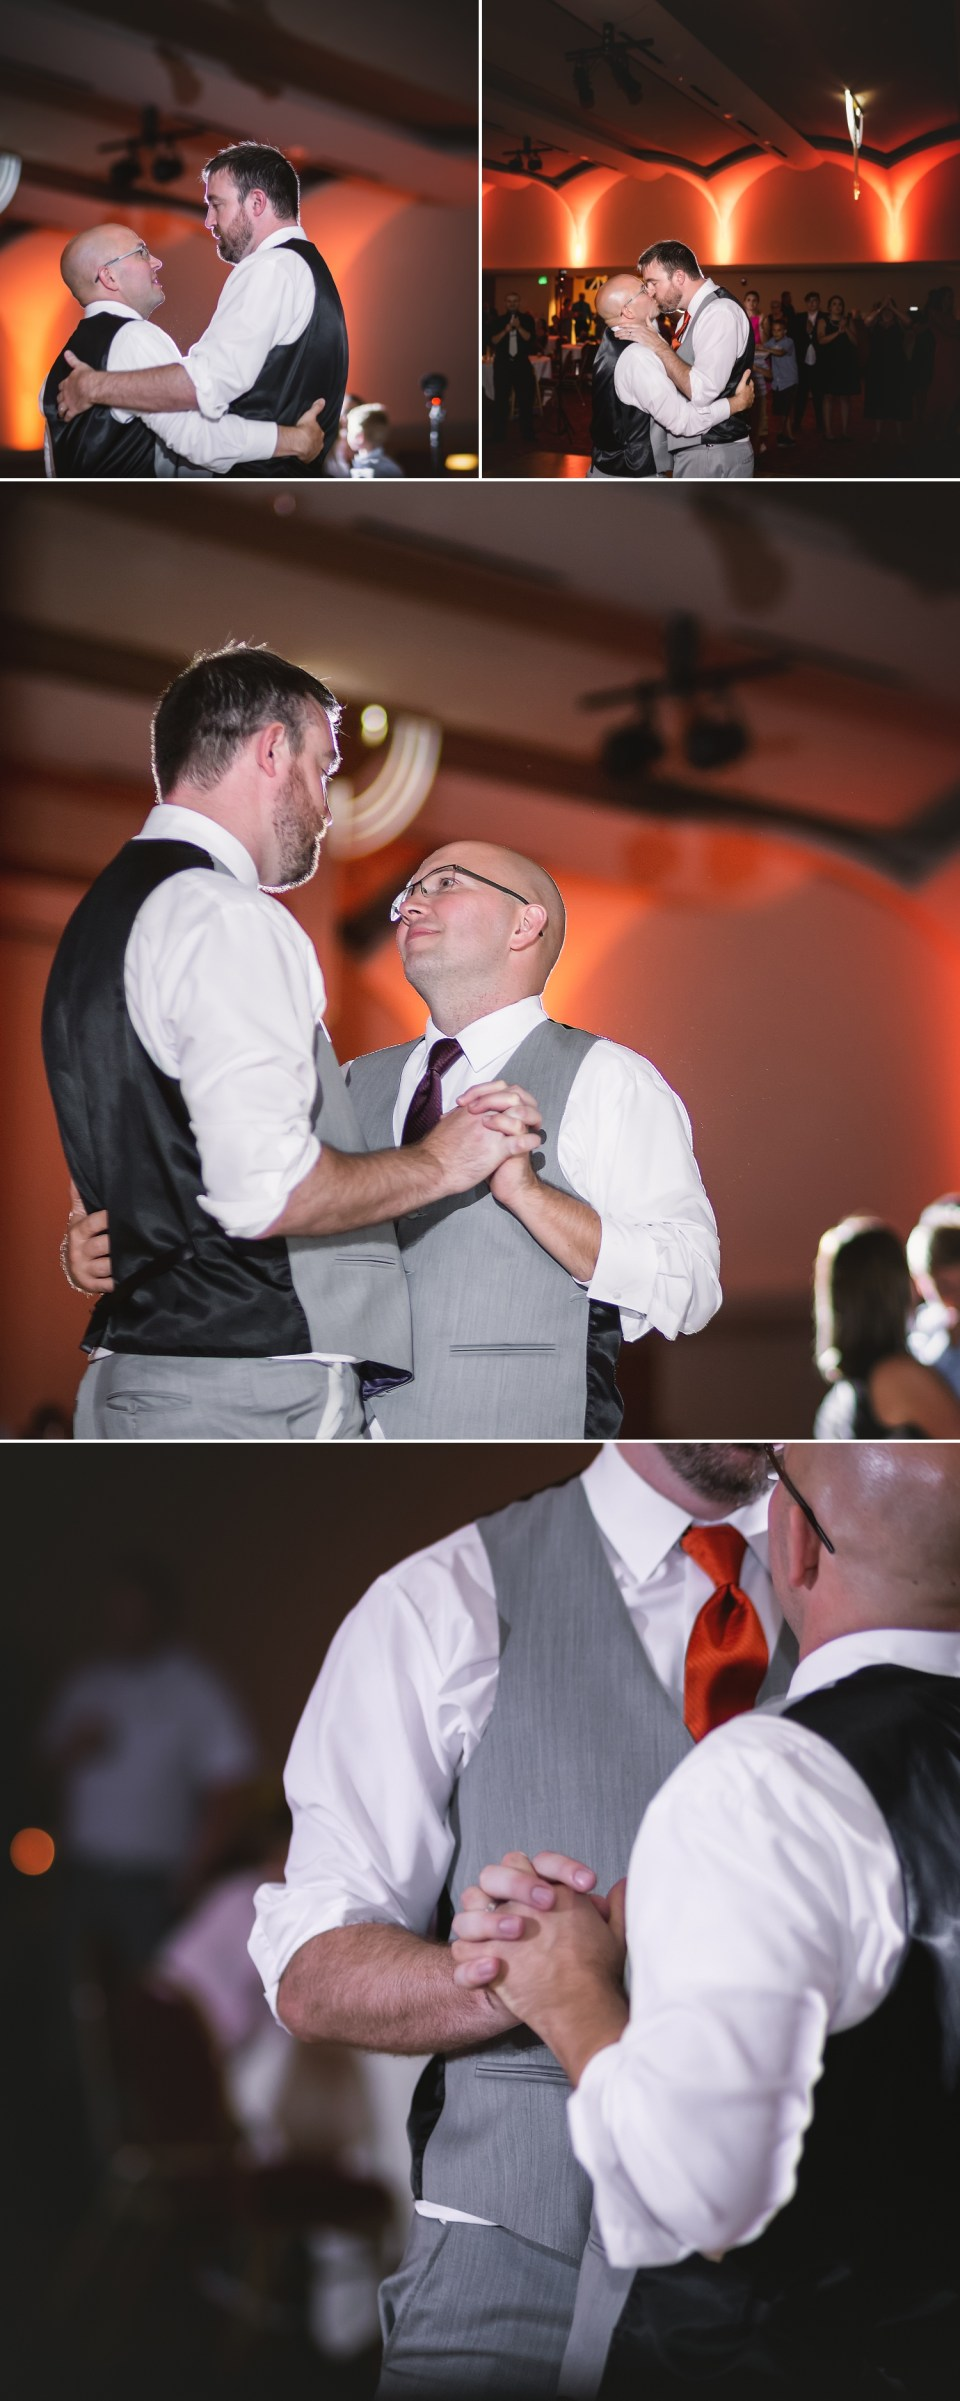 LGBTQ First Dance at The Monona Terrace in Madison, WI | Pink Spruce Photography | www.pinksprucephotography.com